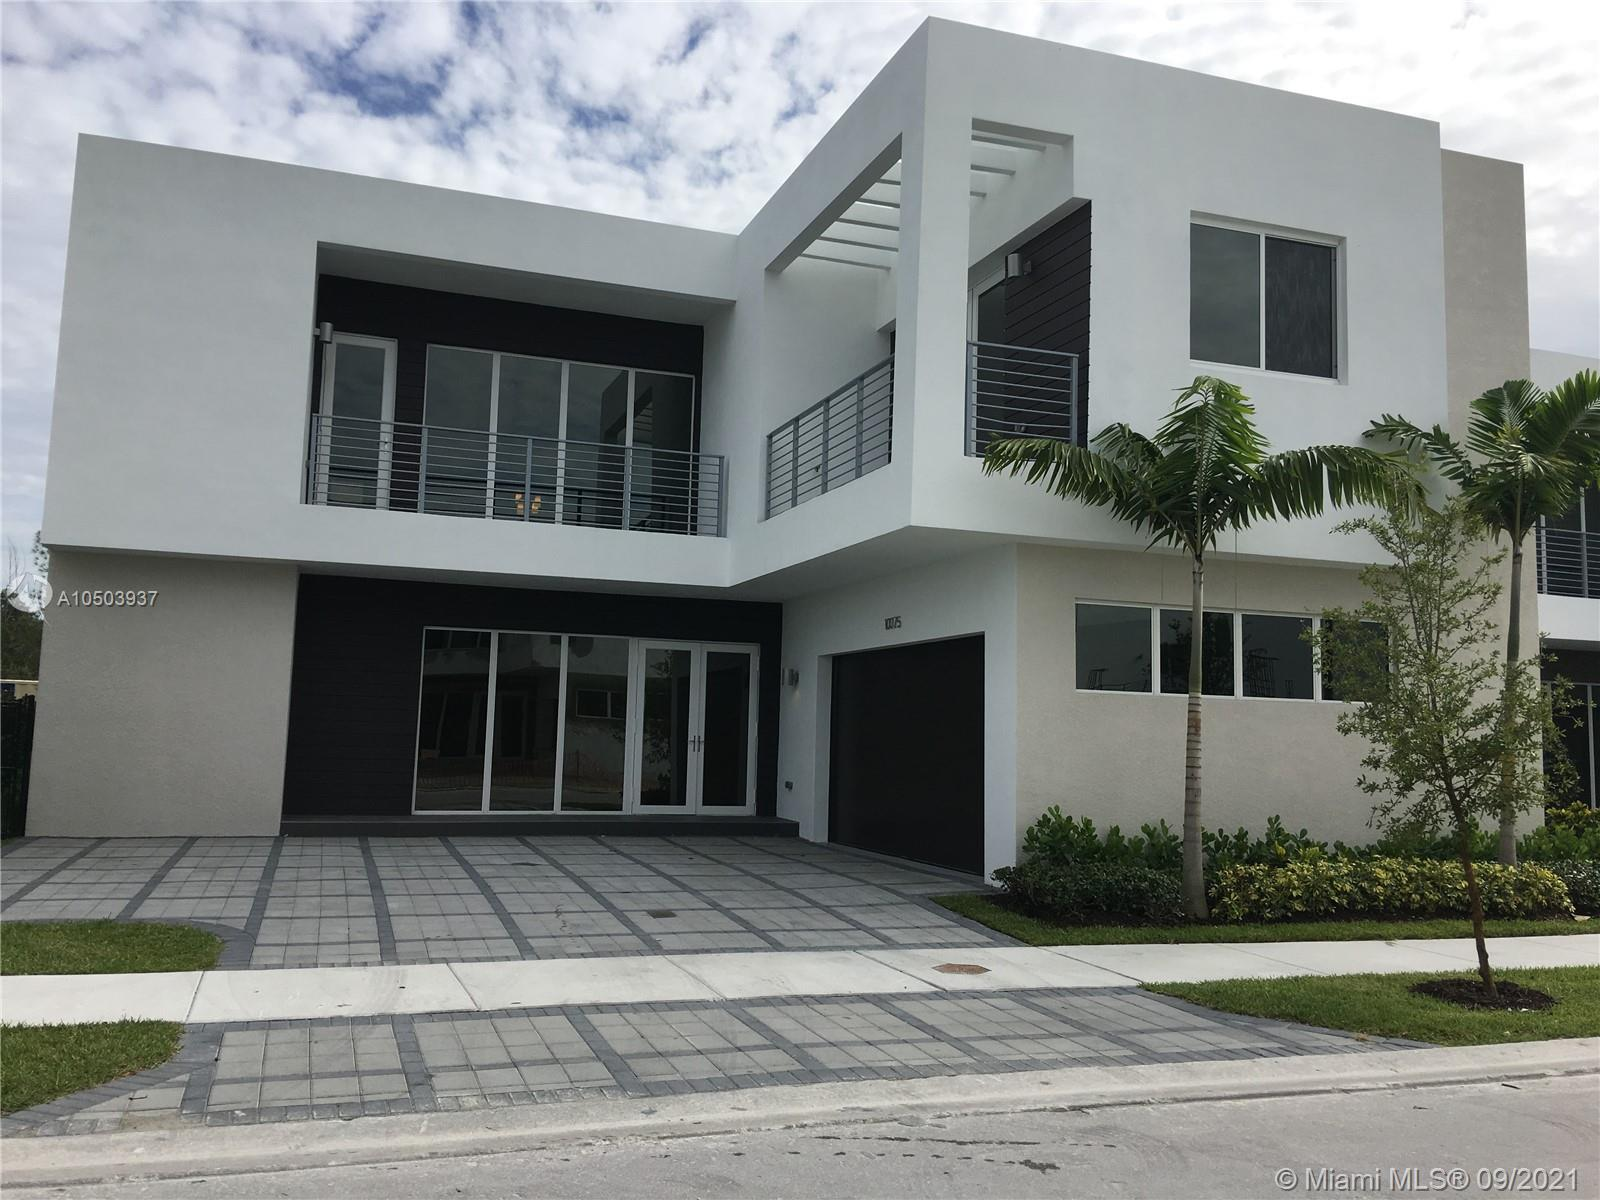 10075 NW 77th St, Doral, Florida 33178